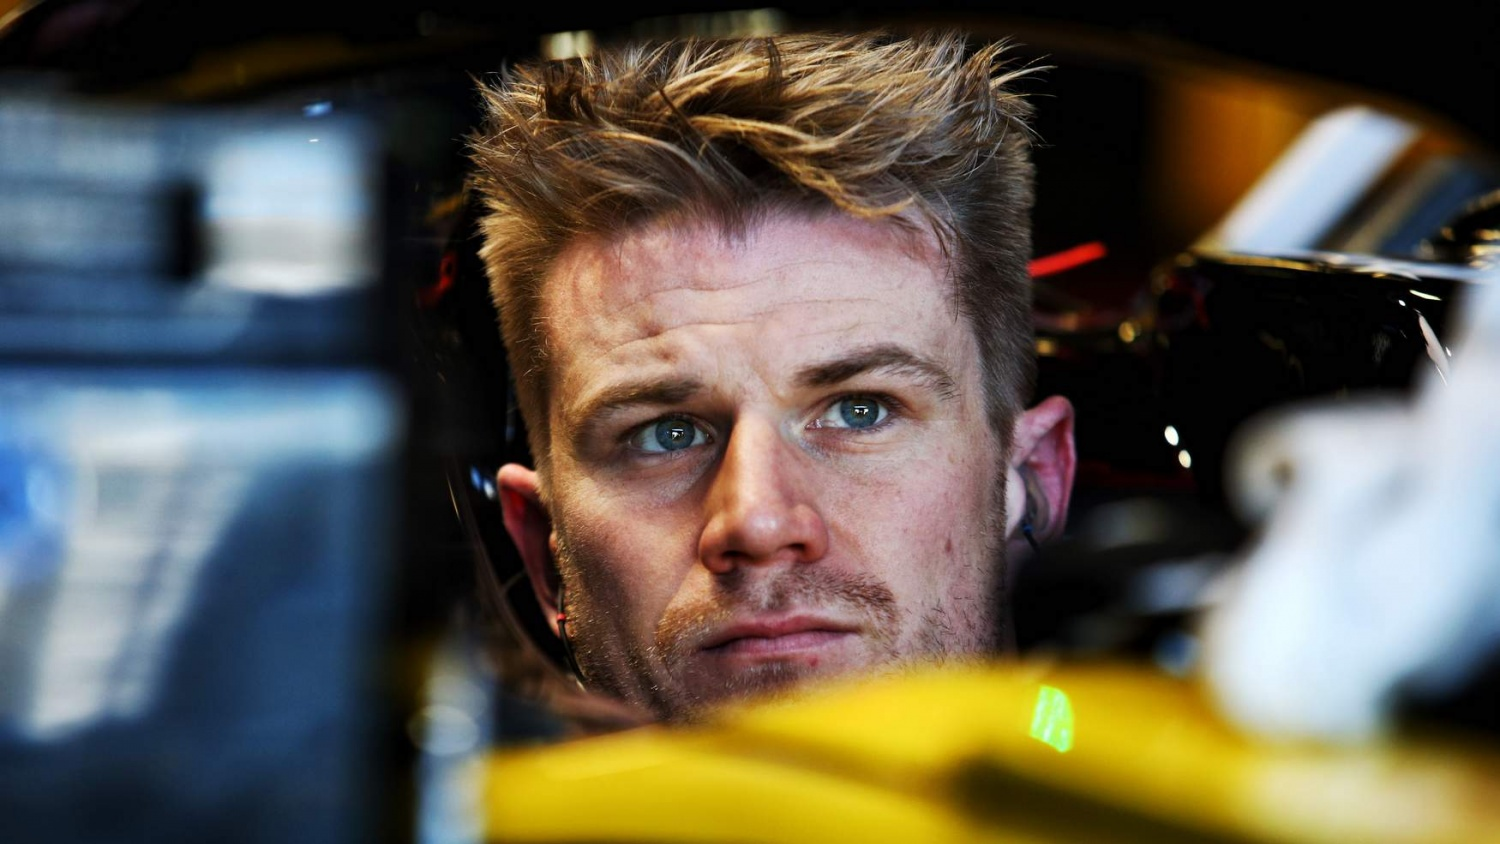 Nico Hulkenberg reflects on the end of F1 and new beginnings